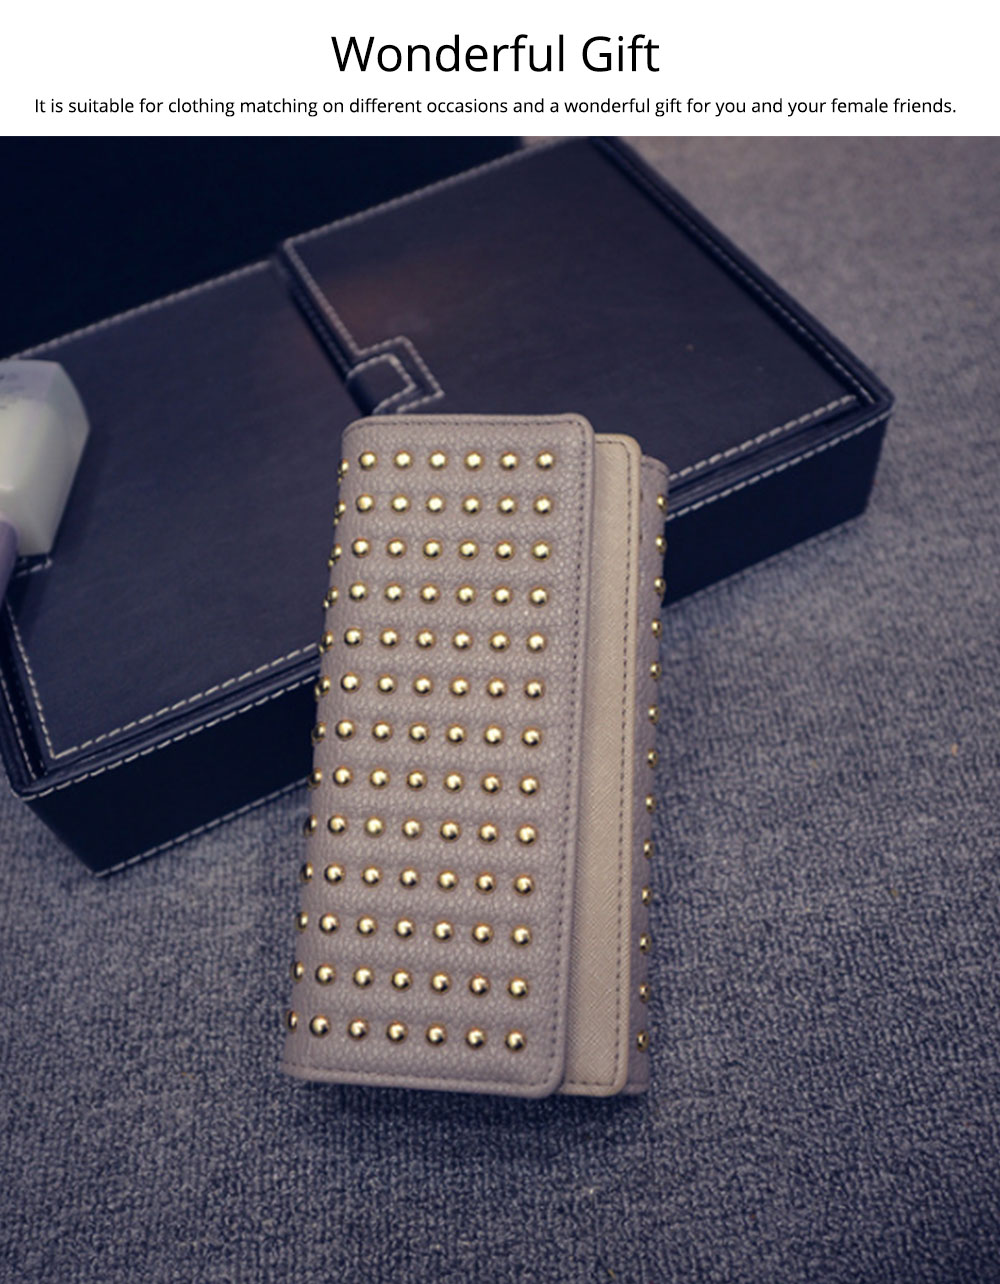 Long Double Cover Clutch, New Fashion Women wallet, European and American Pop Pun Style Rivet Handbag 3